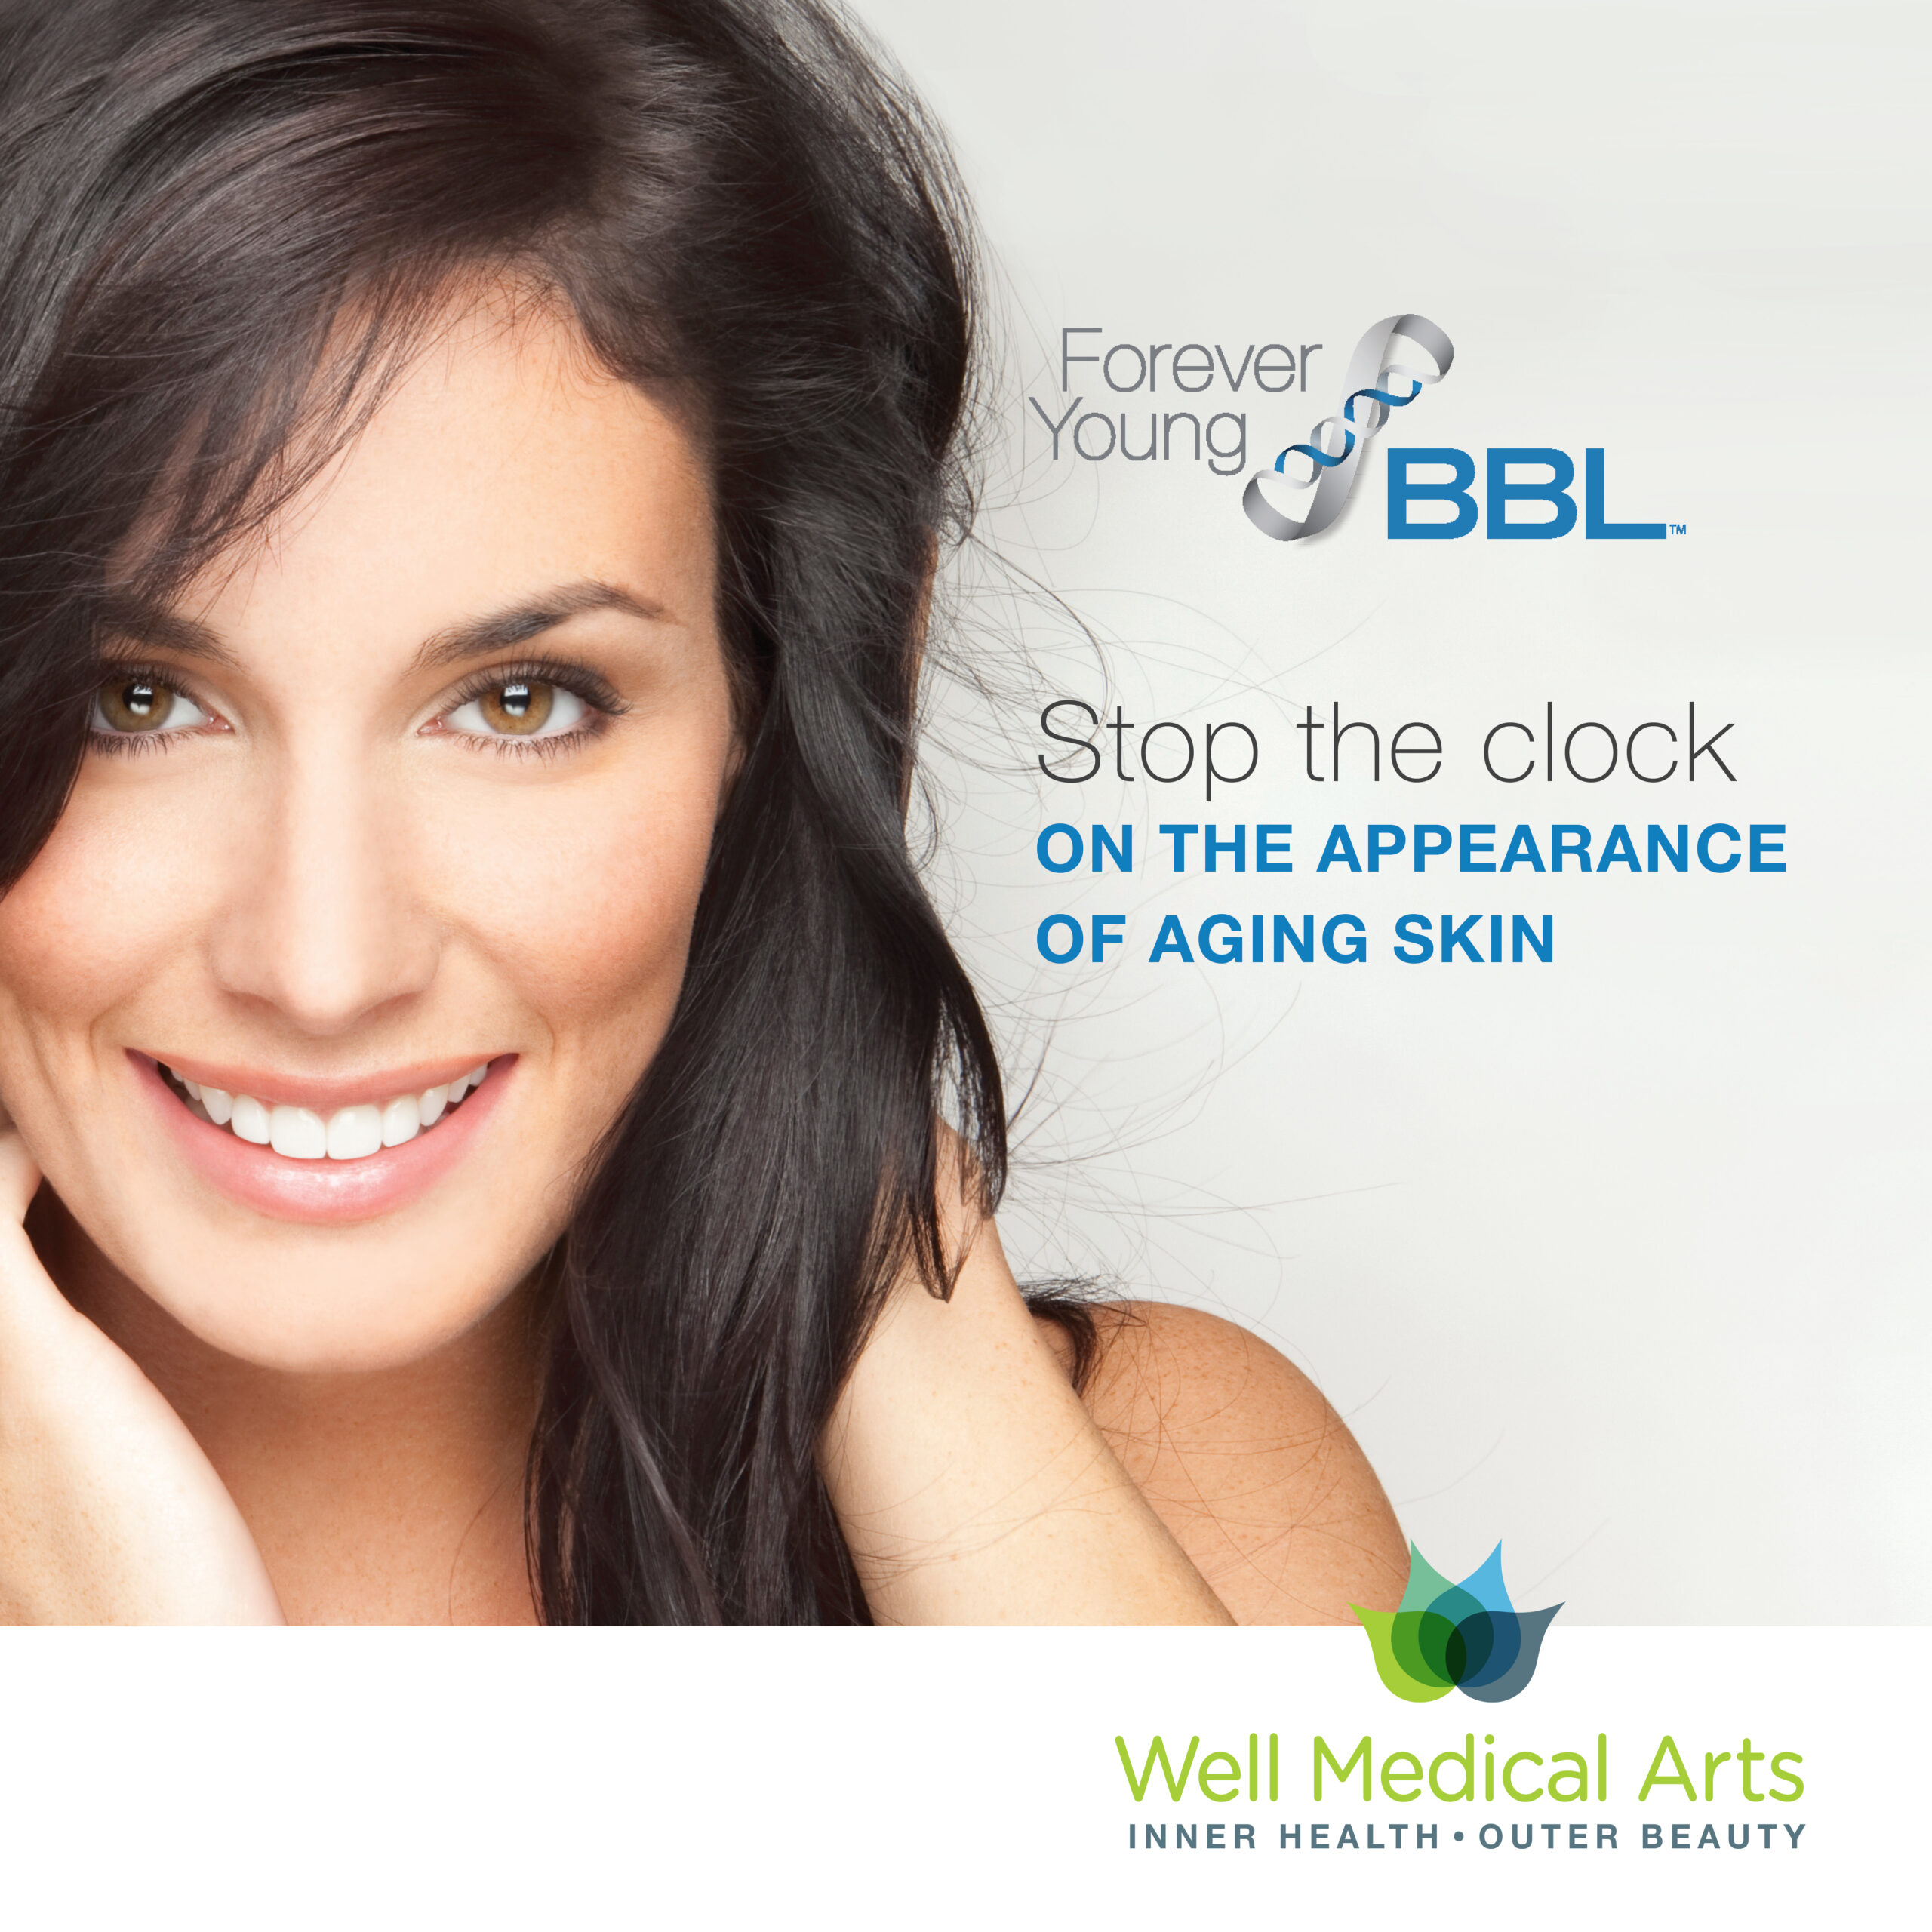 Treat Summer Sun Spots TheForever Young BBL(broadband Light)treatment is an innovative technology that uniquely delivers light therapy targeting the signs of aging and sun damage and effectively provides a more refreshed, rejuvenated and youthful appearance. At Well Medical Arts we have a combined experience of 30 Years treating sun damage and would love to take care of you. Call 206-935-5689 or visit us at http://wellmedicalarts.com/bbl-broad-band-light/ to learn more.